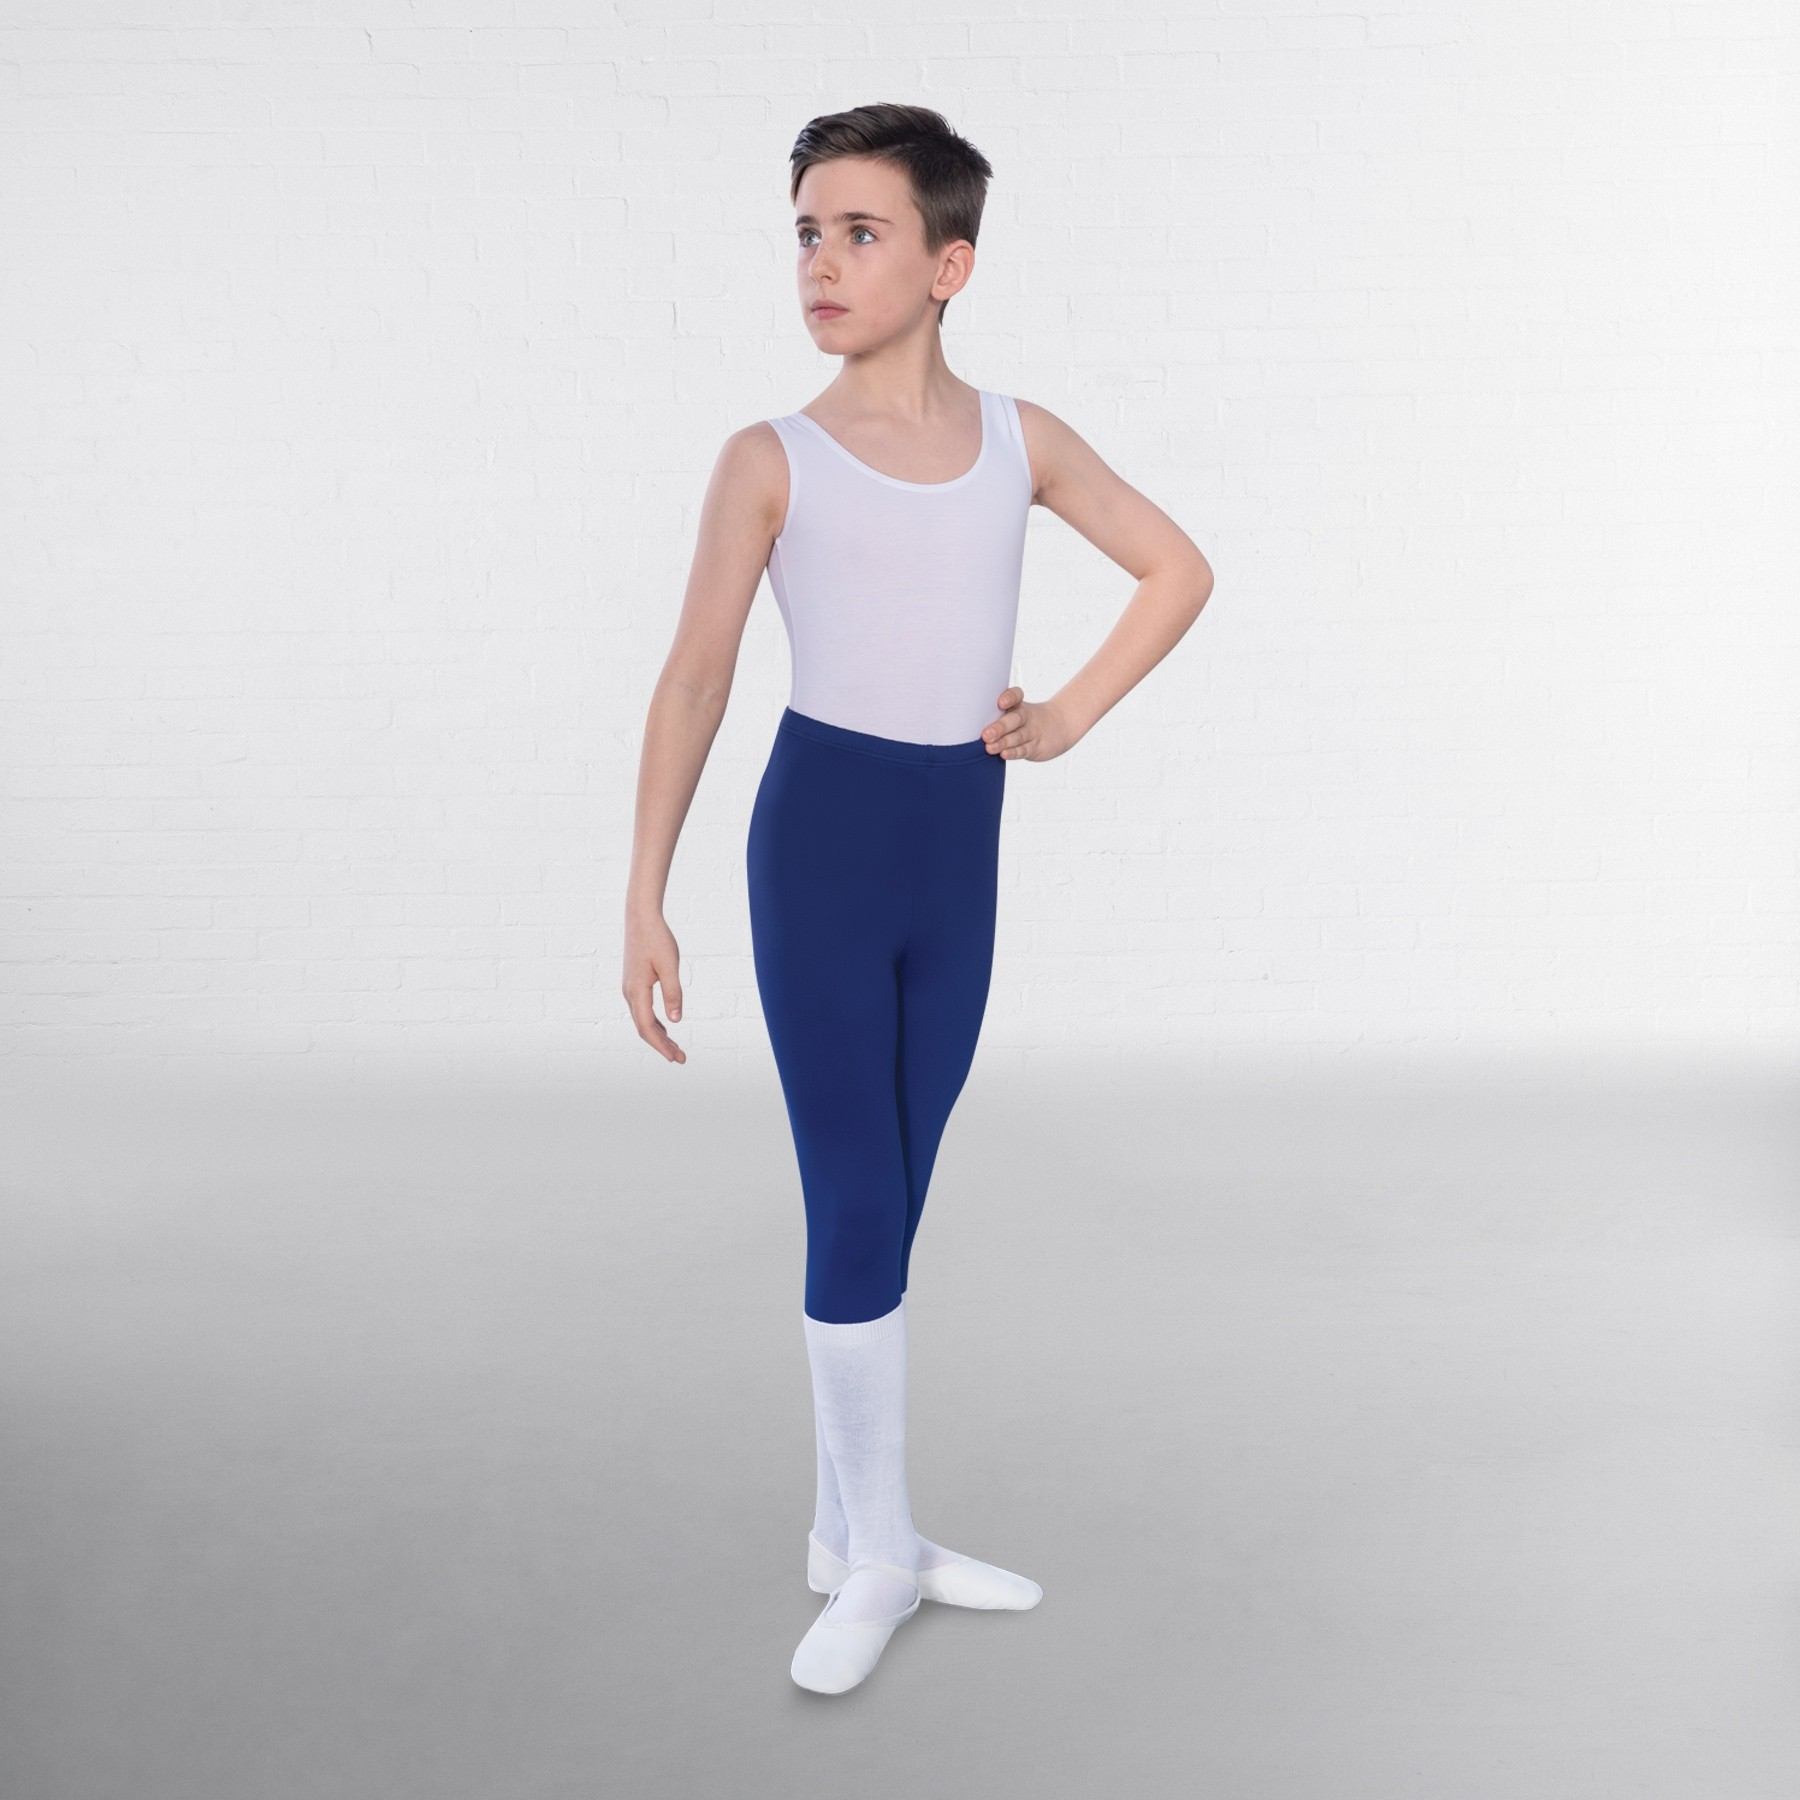 1st Position Male Sleeveless Scoop Neck Leotard (White)